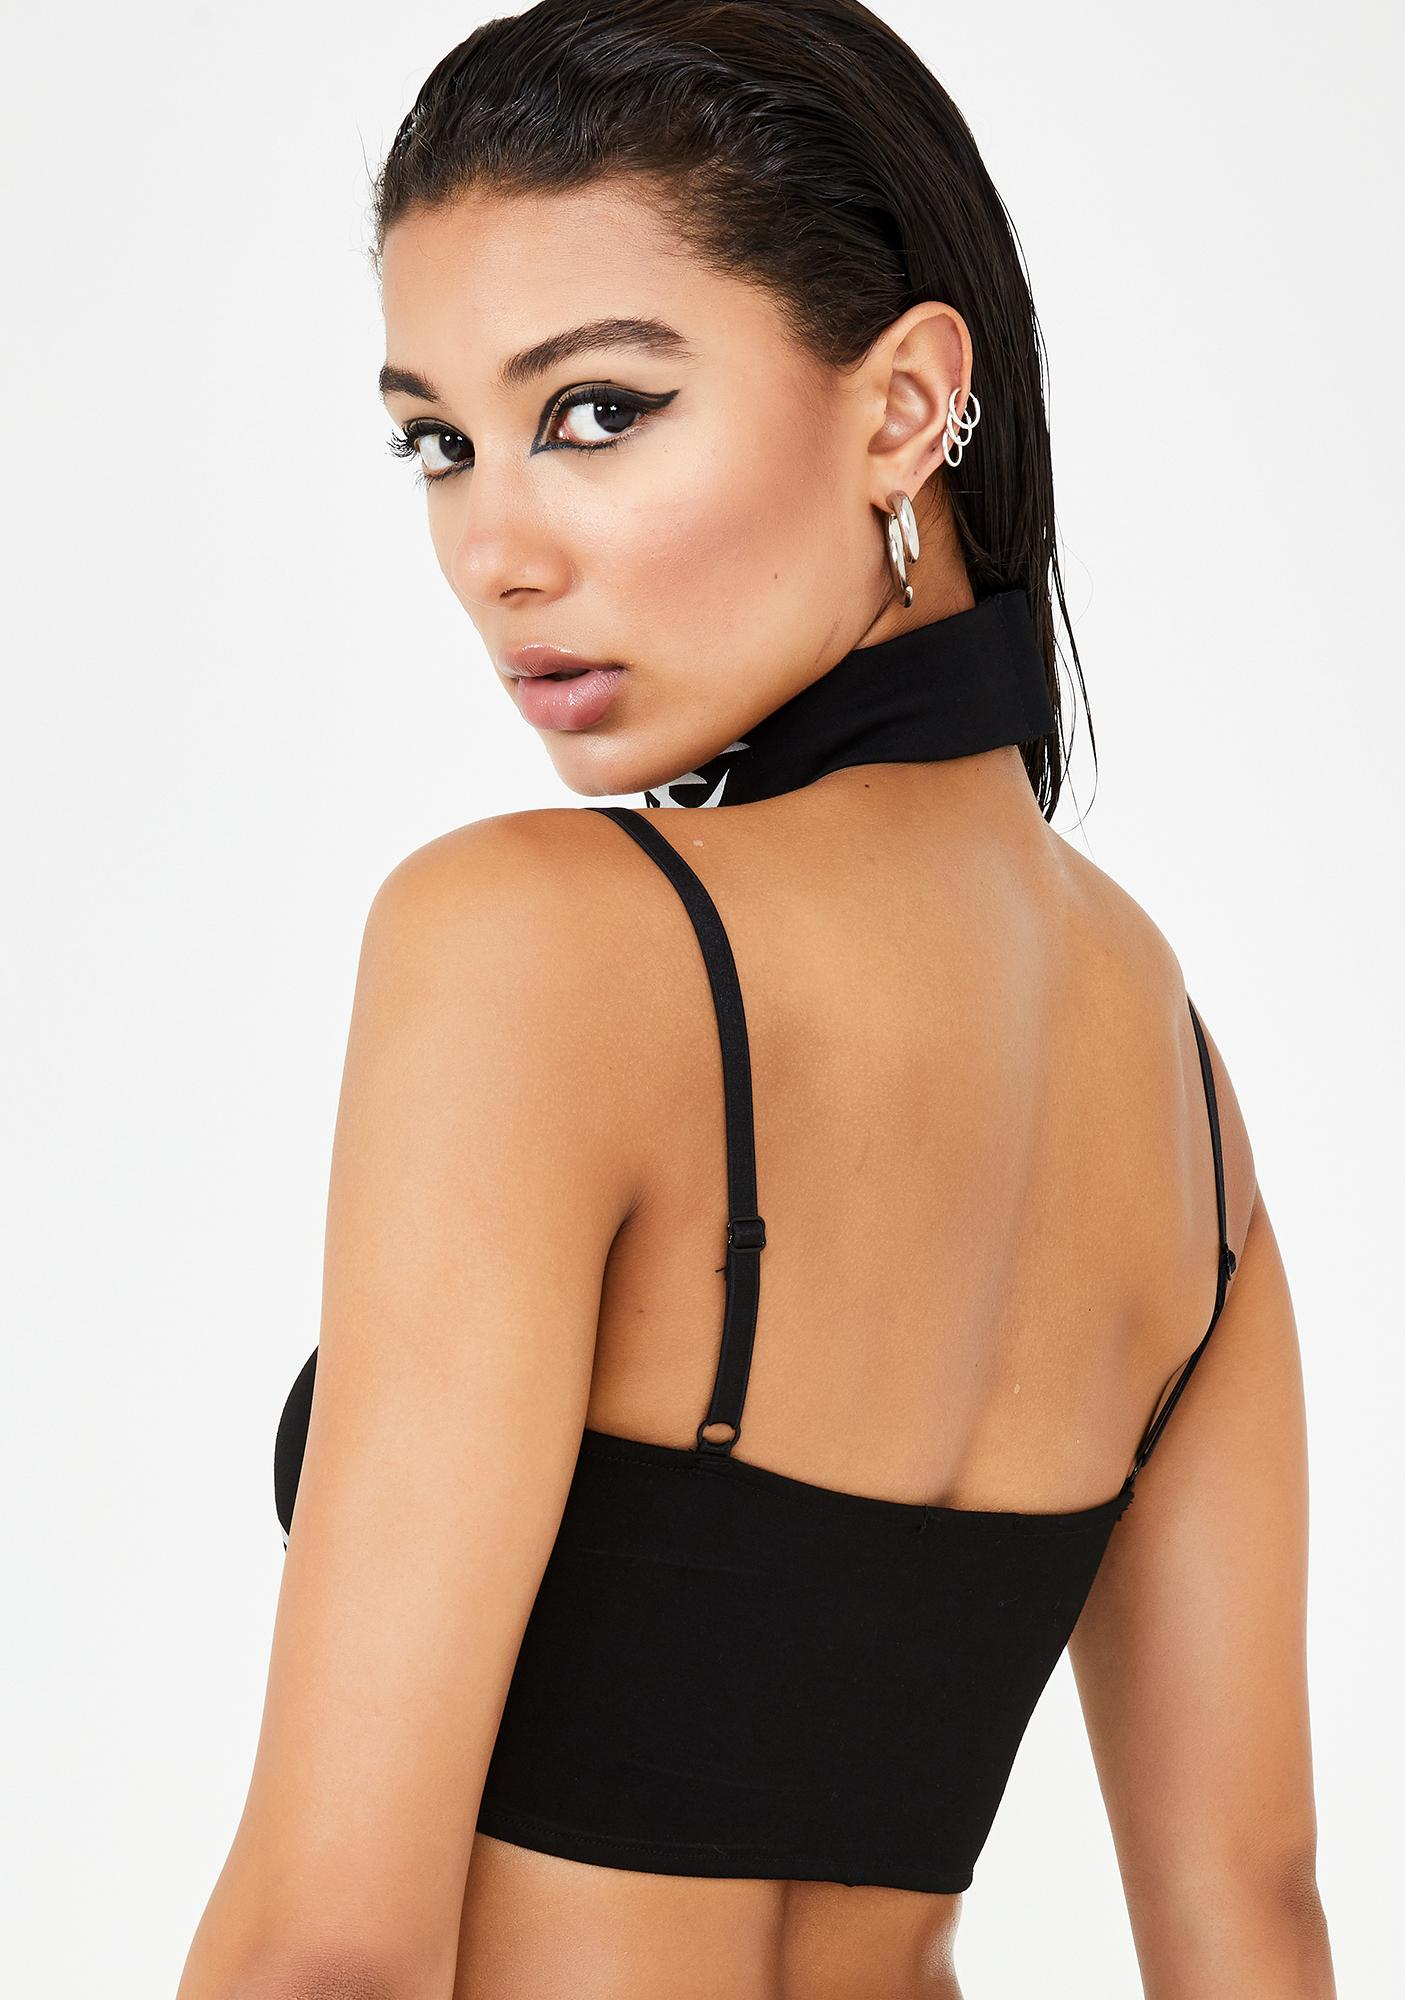 Club Exx Mark Of The Beast Reflective Bra Top